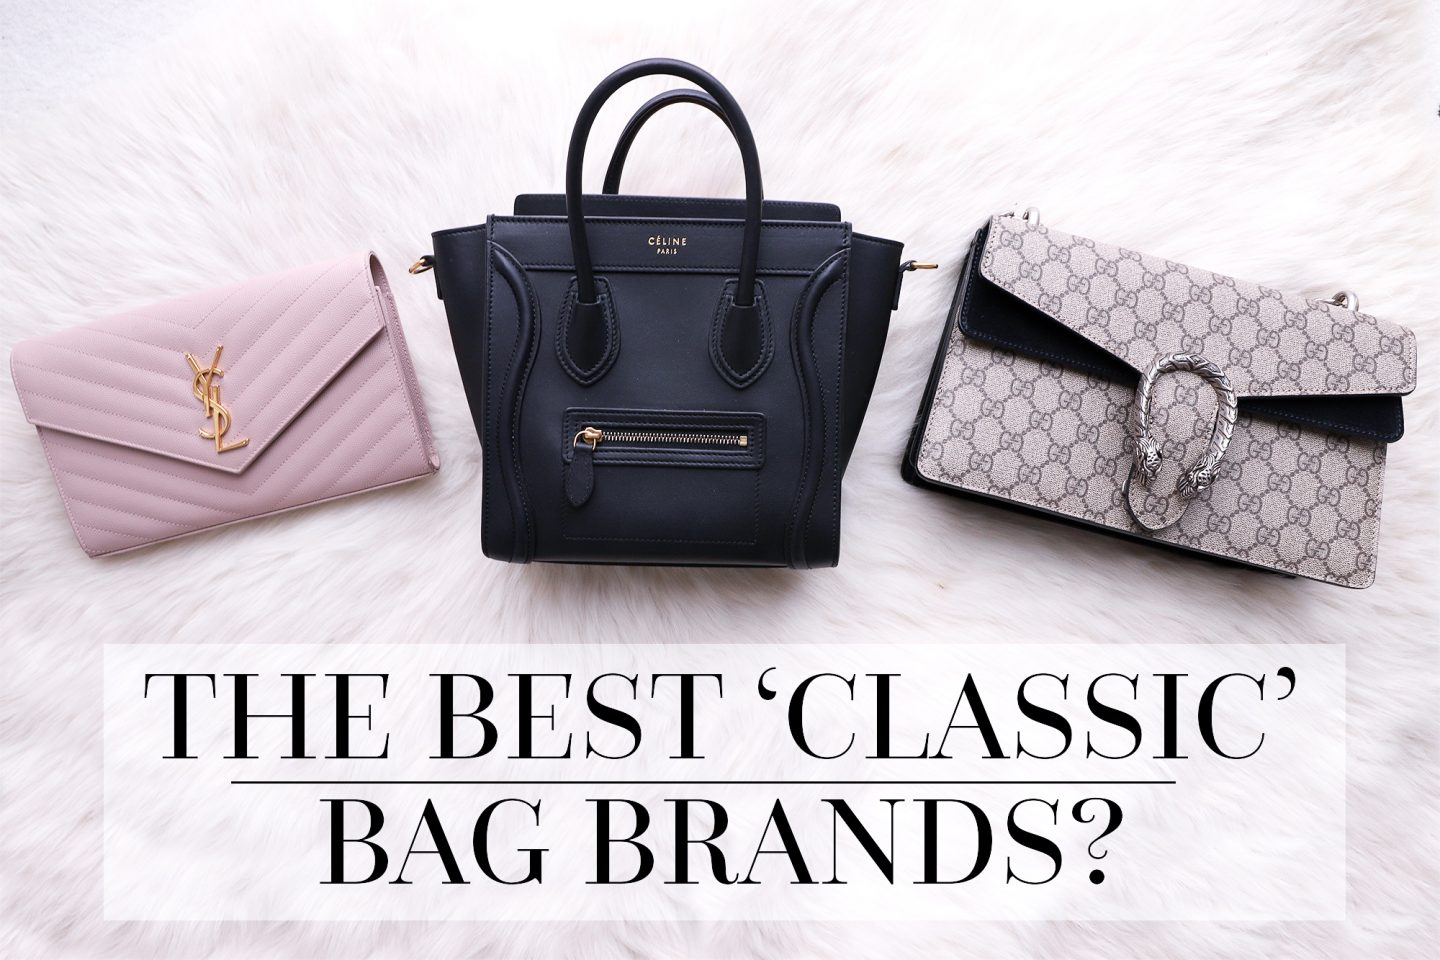 b2ed2e26c7ab It s not a secret that my favourite luxury brand is Chanel. I ve loved  Chanel s aesthetic for far longer than I ve been able to afford it and I  can t ...